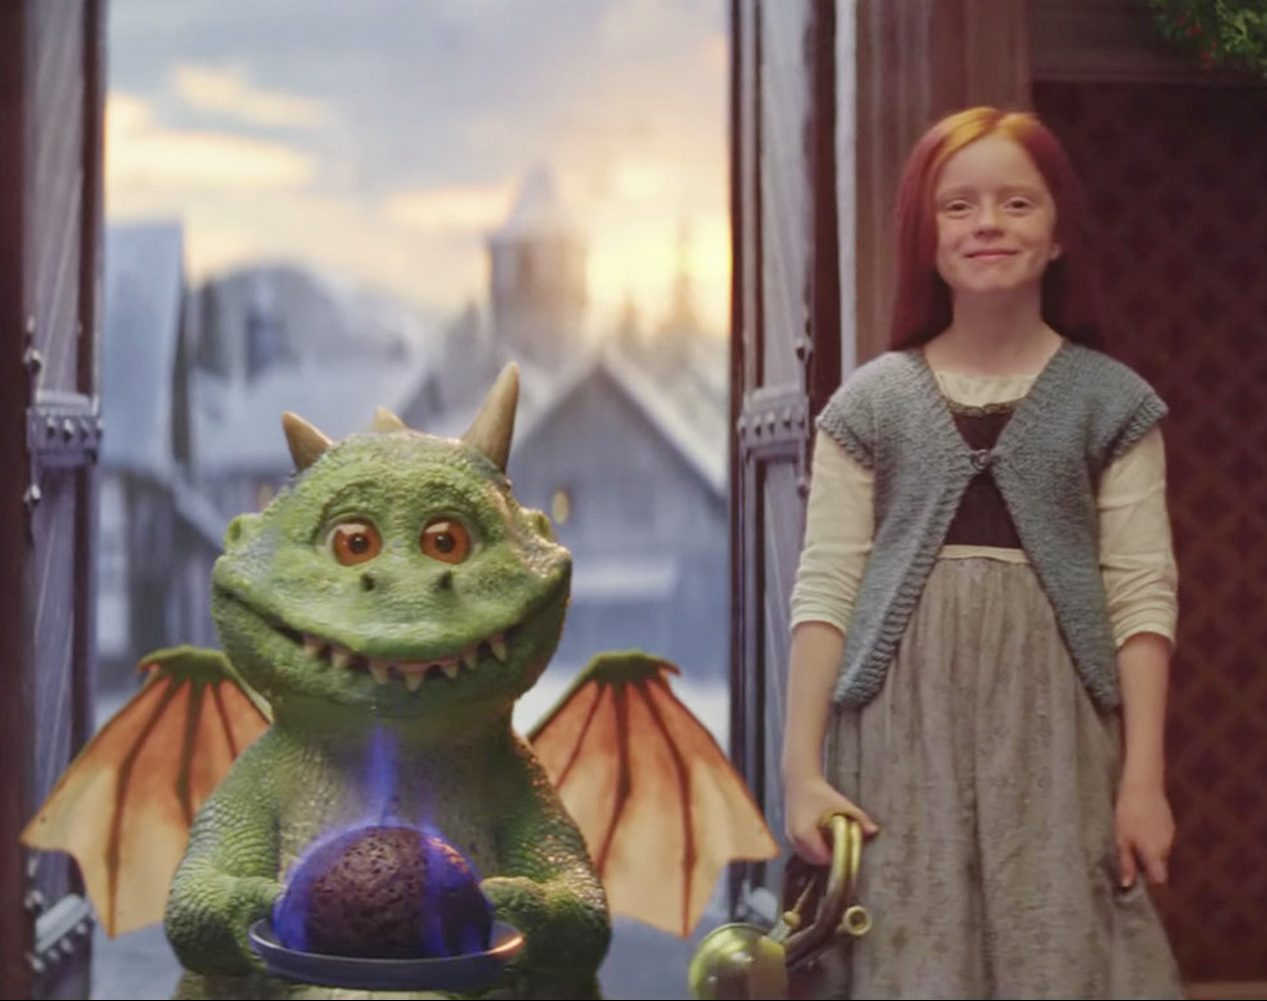 AD COMPOSITE John Lewis Advert e1608633378501 20 Bizarre British Christmas Traditions That Confuse The Rest of The World